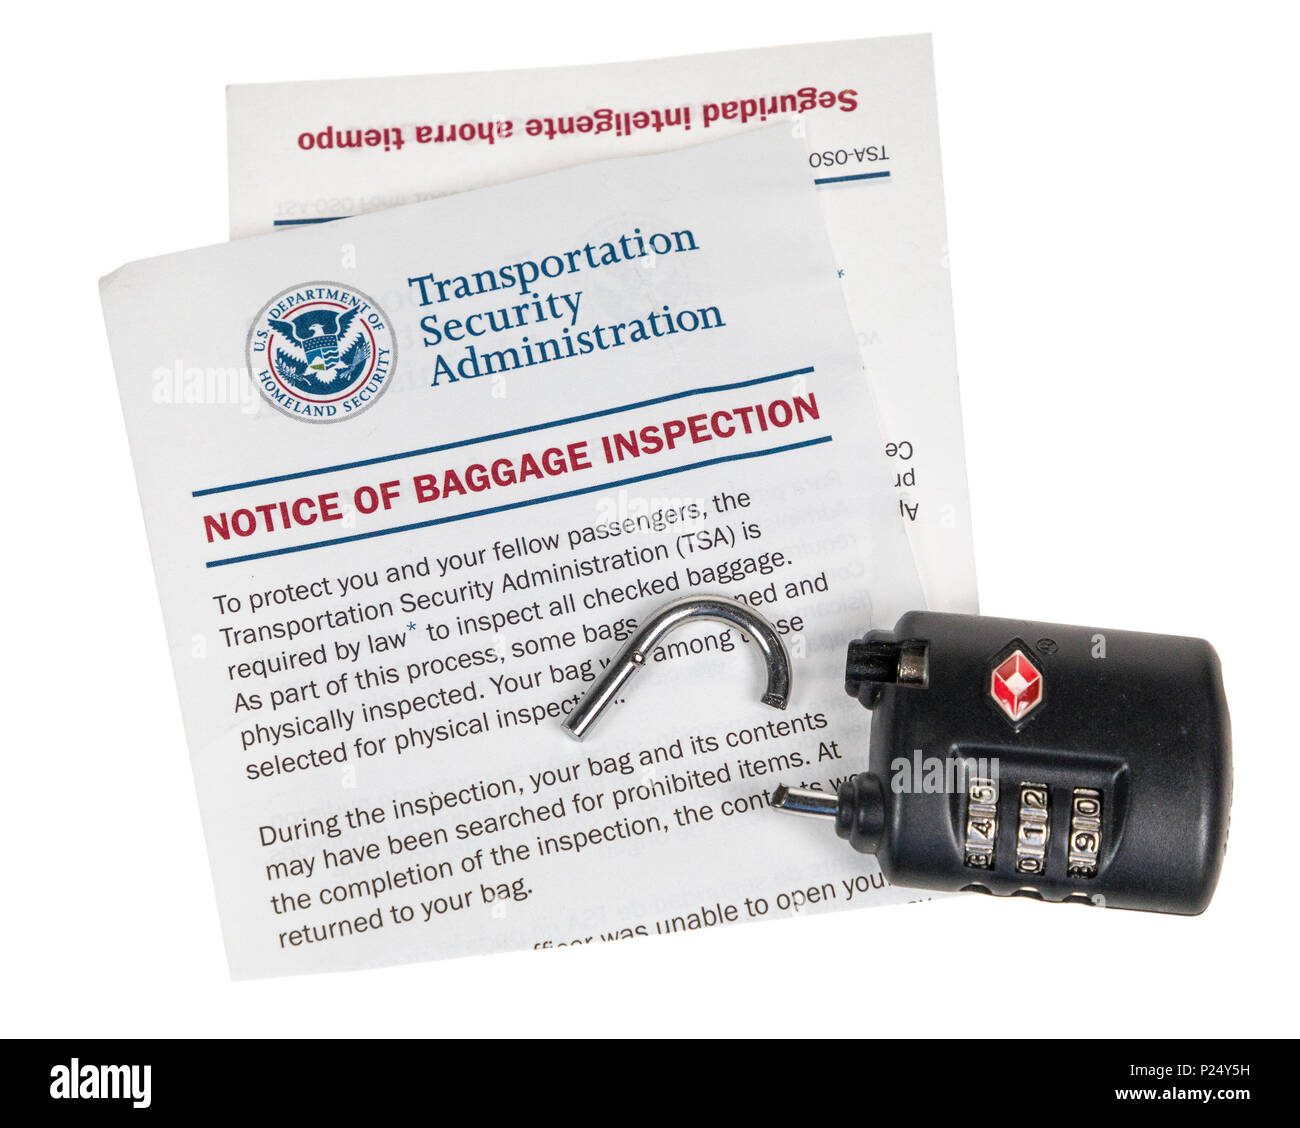 TSA lock cut off bag by Transport Security Administration in the USA, instead of opening it using a key - Stock Image